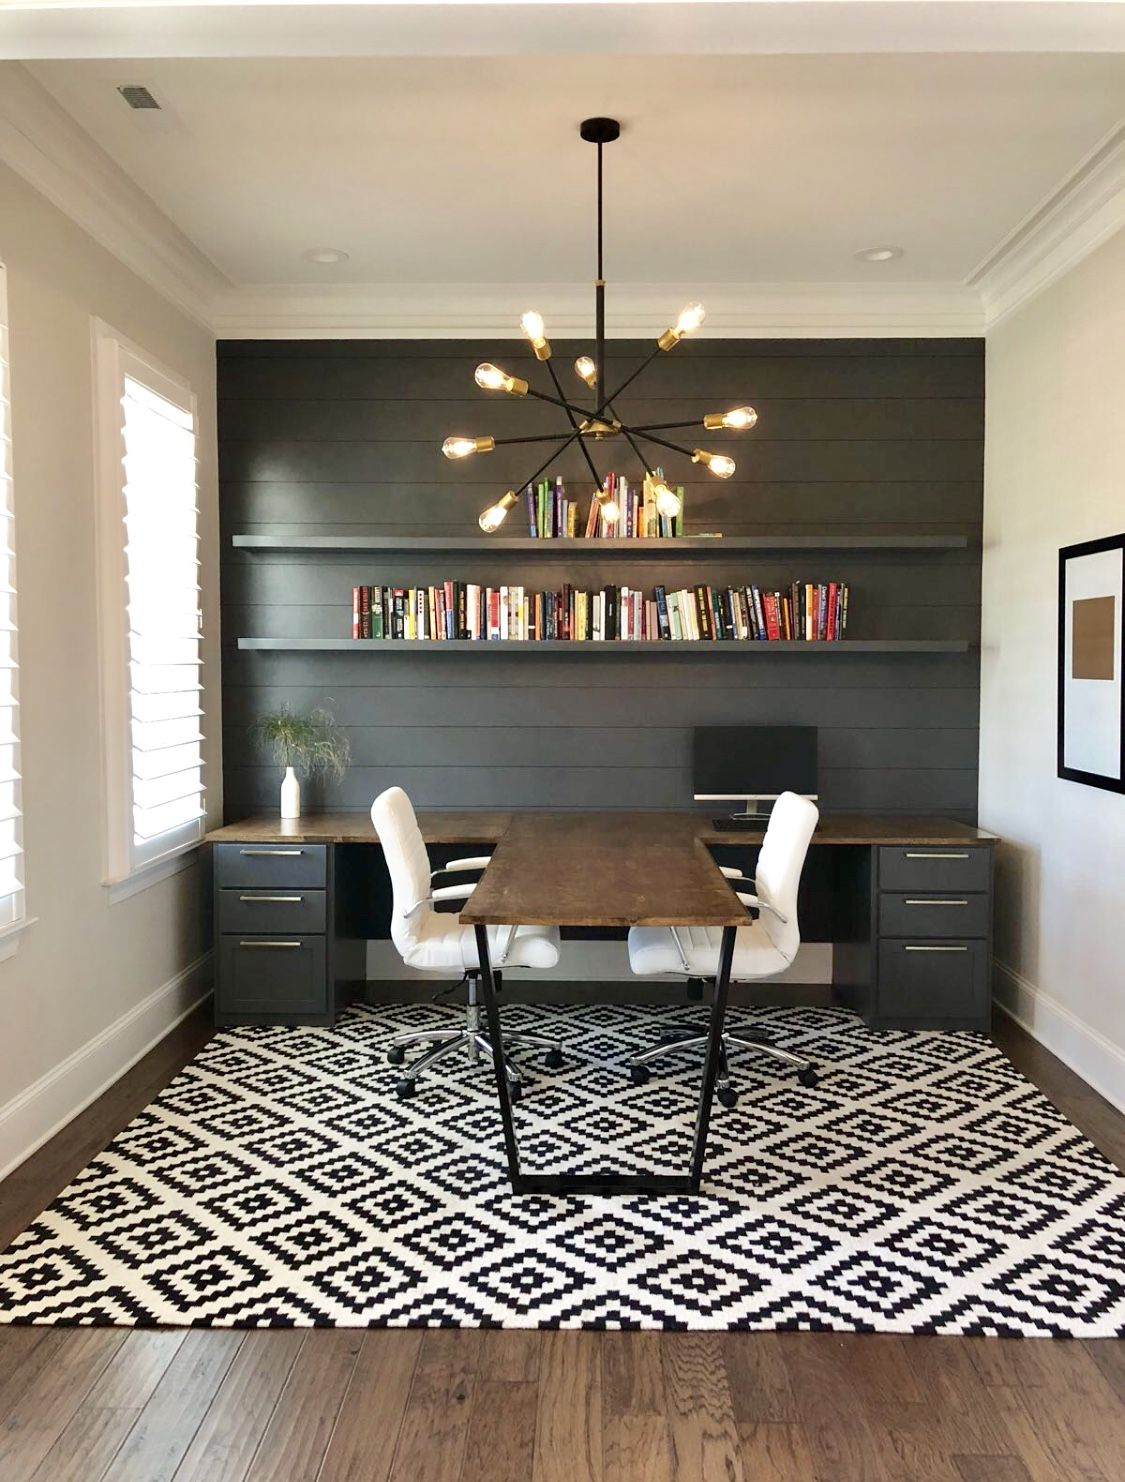 Home Office For Two Home Office Decor Home Office Design Home